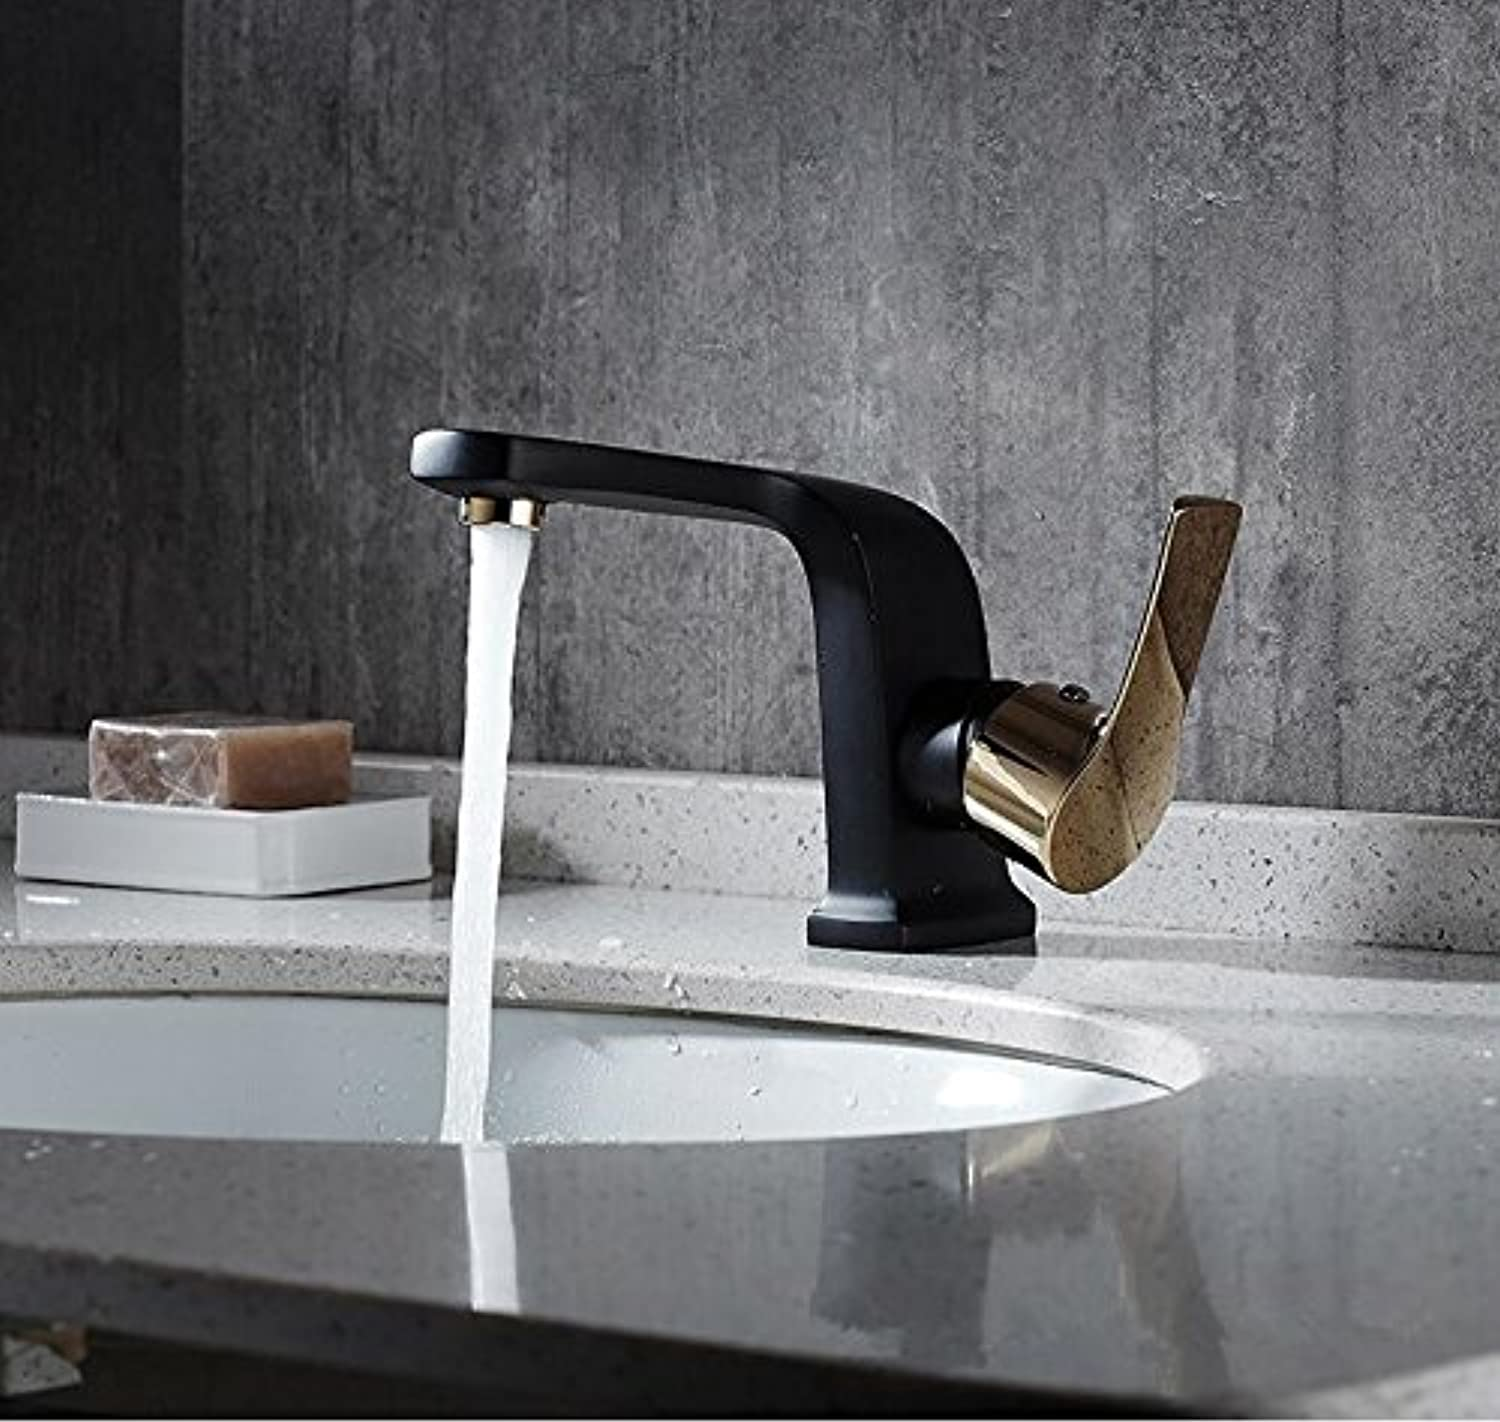 New, Black, gold, Copper, Cold, Cold And Hot Pots, Water Faucets, Single Hole, Single Hole, And Lower Basin European Art Faucet,B Black gold